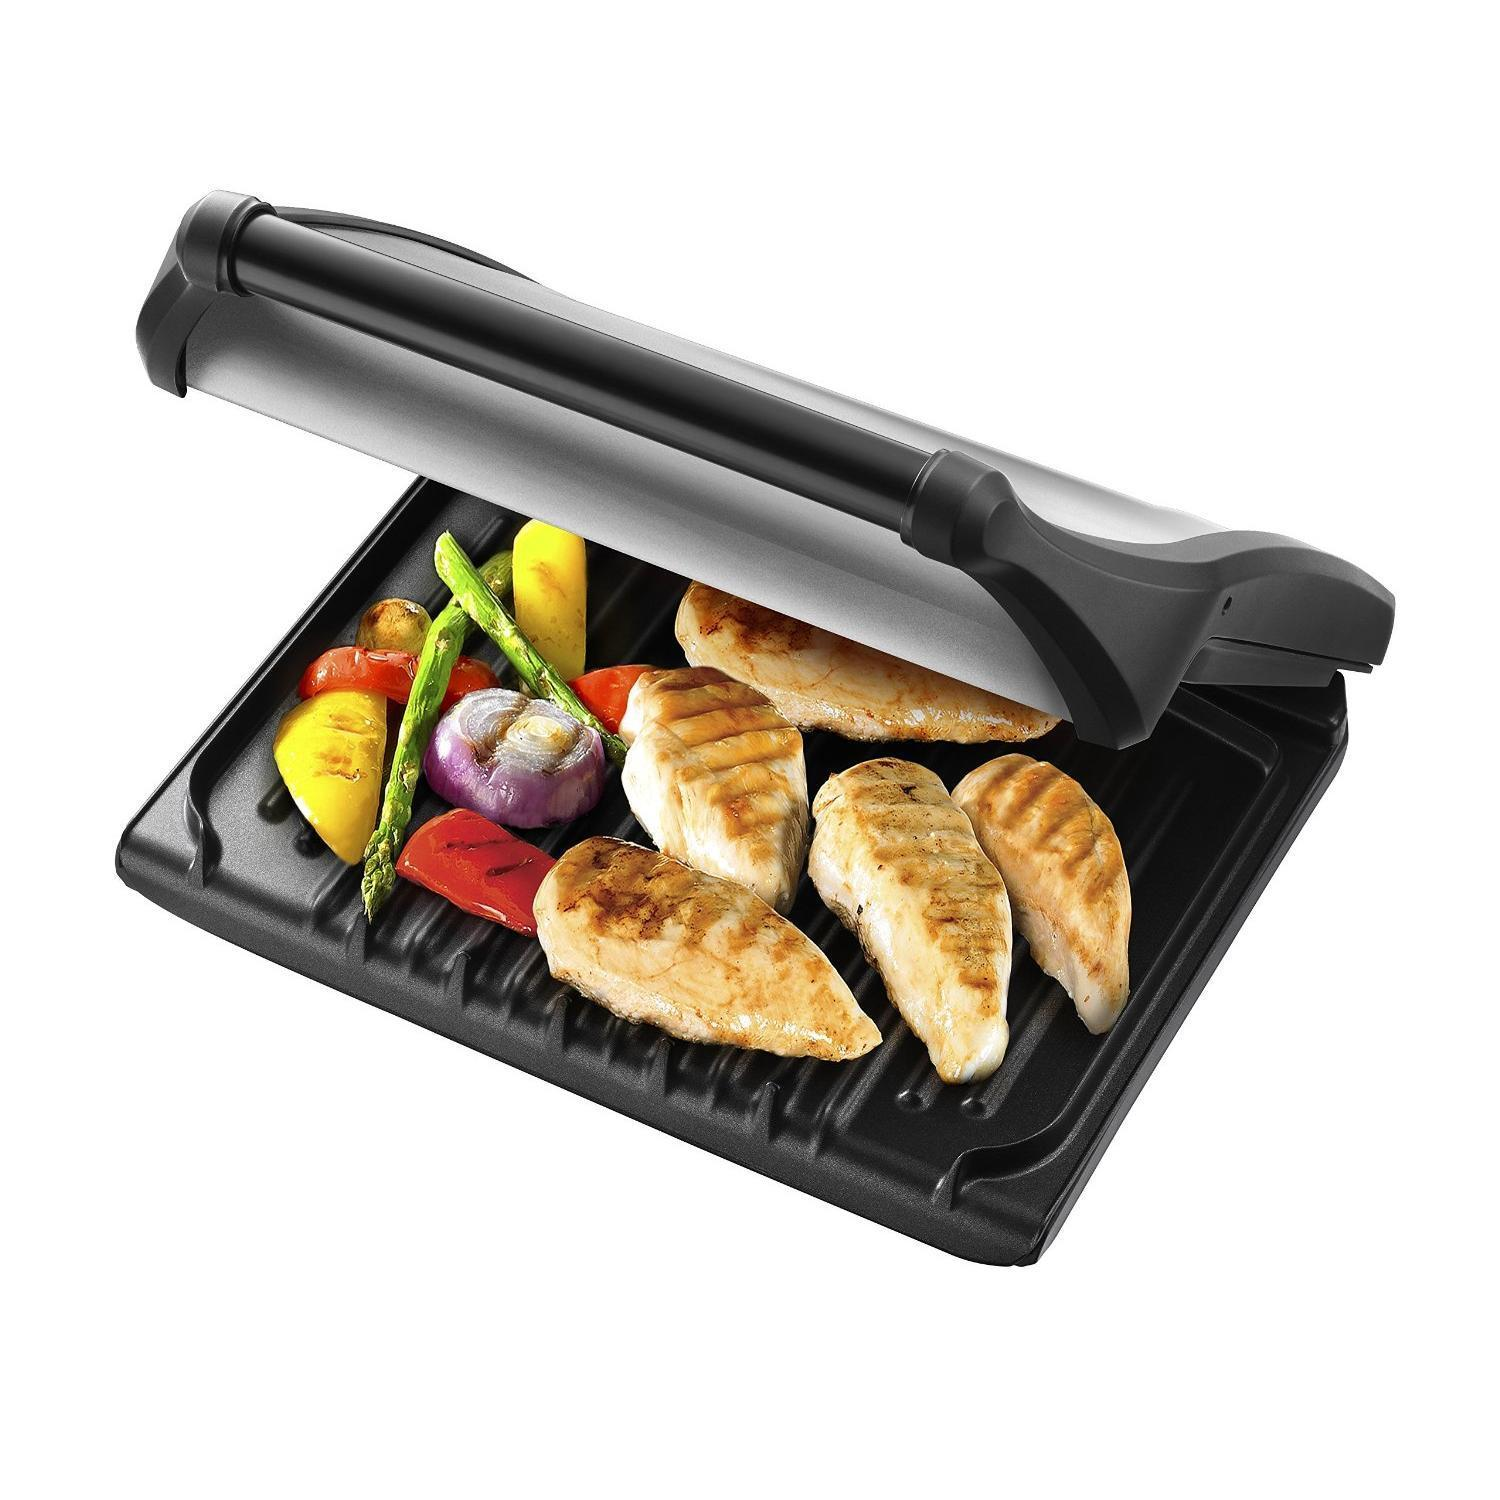 George Foreman - 19932 - Grill family réducteur de graisse 7 portions